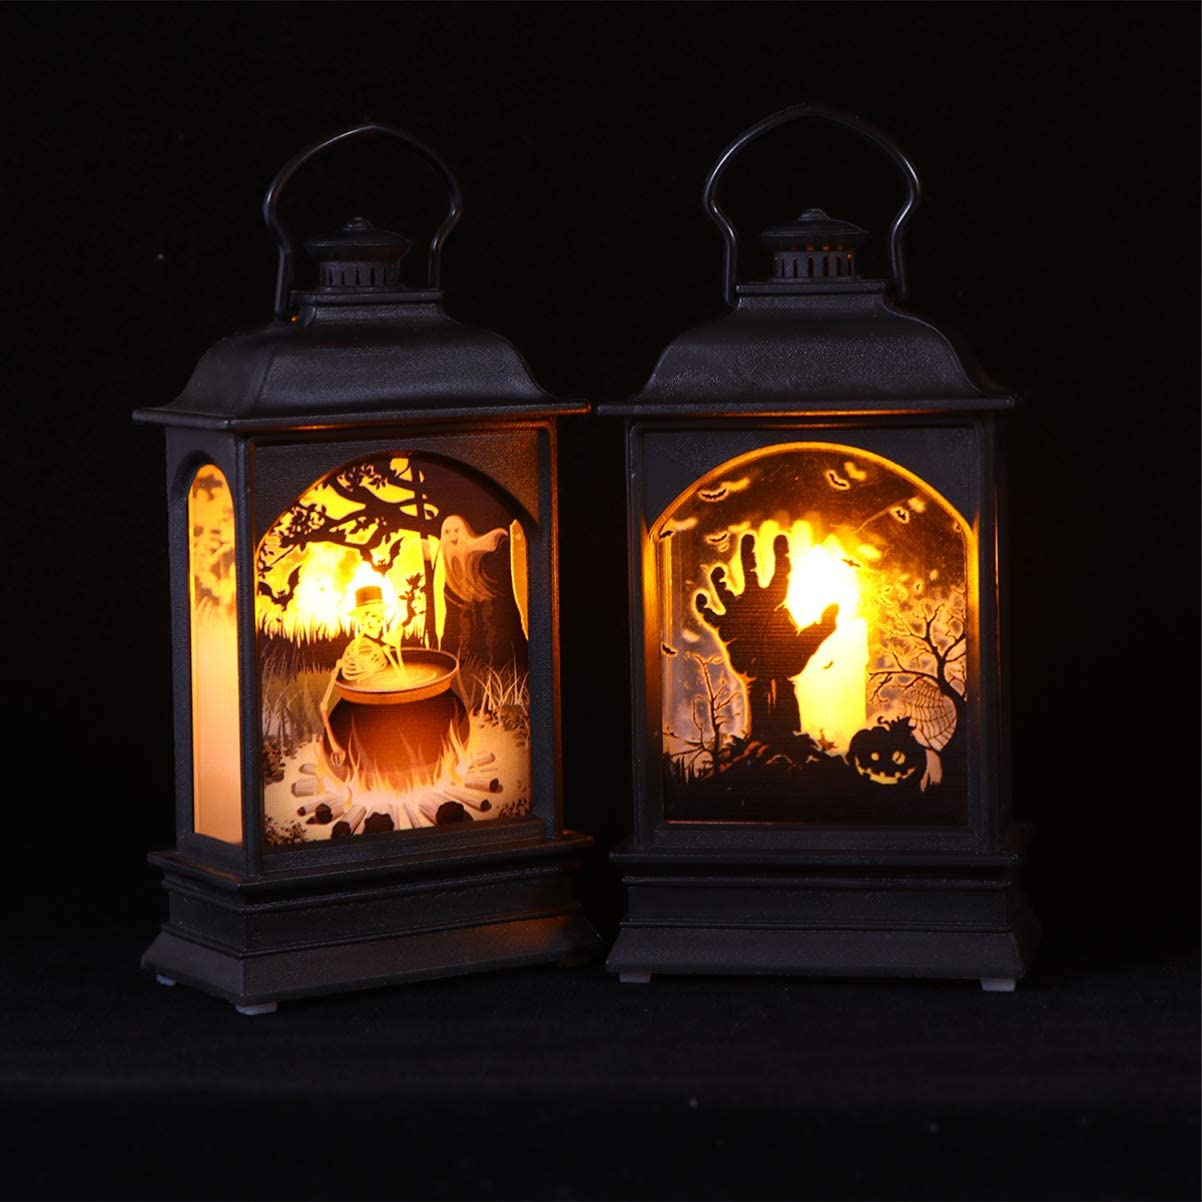 Halloween Portable Lamp Lights Skull Flat Decor Light and Ghost Hand Decor Lamp for Festive Party Indoor Decor Supplies 2PCS